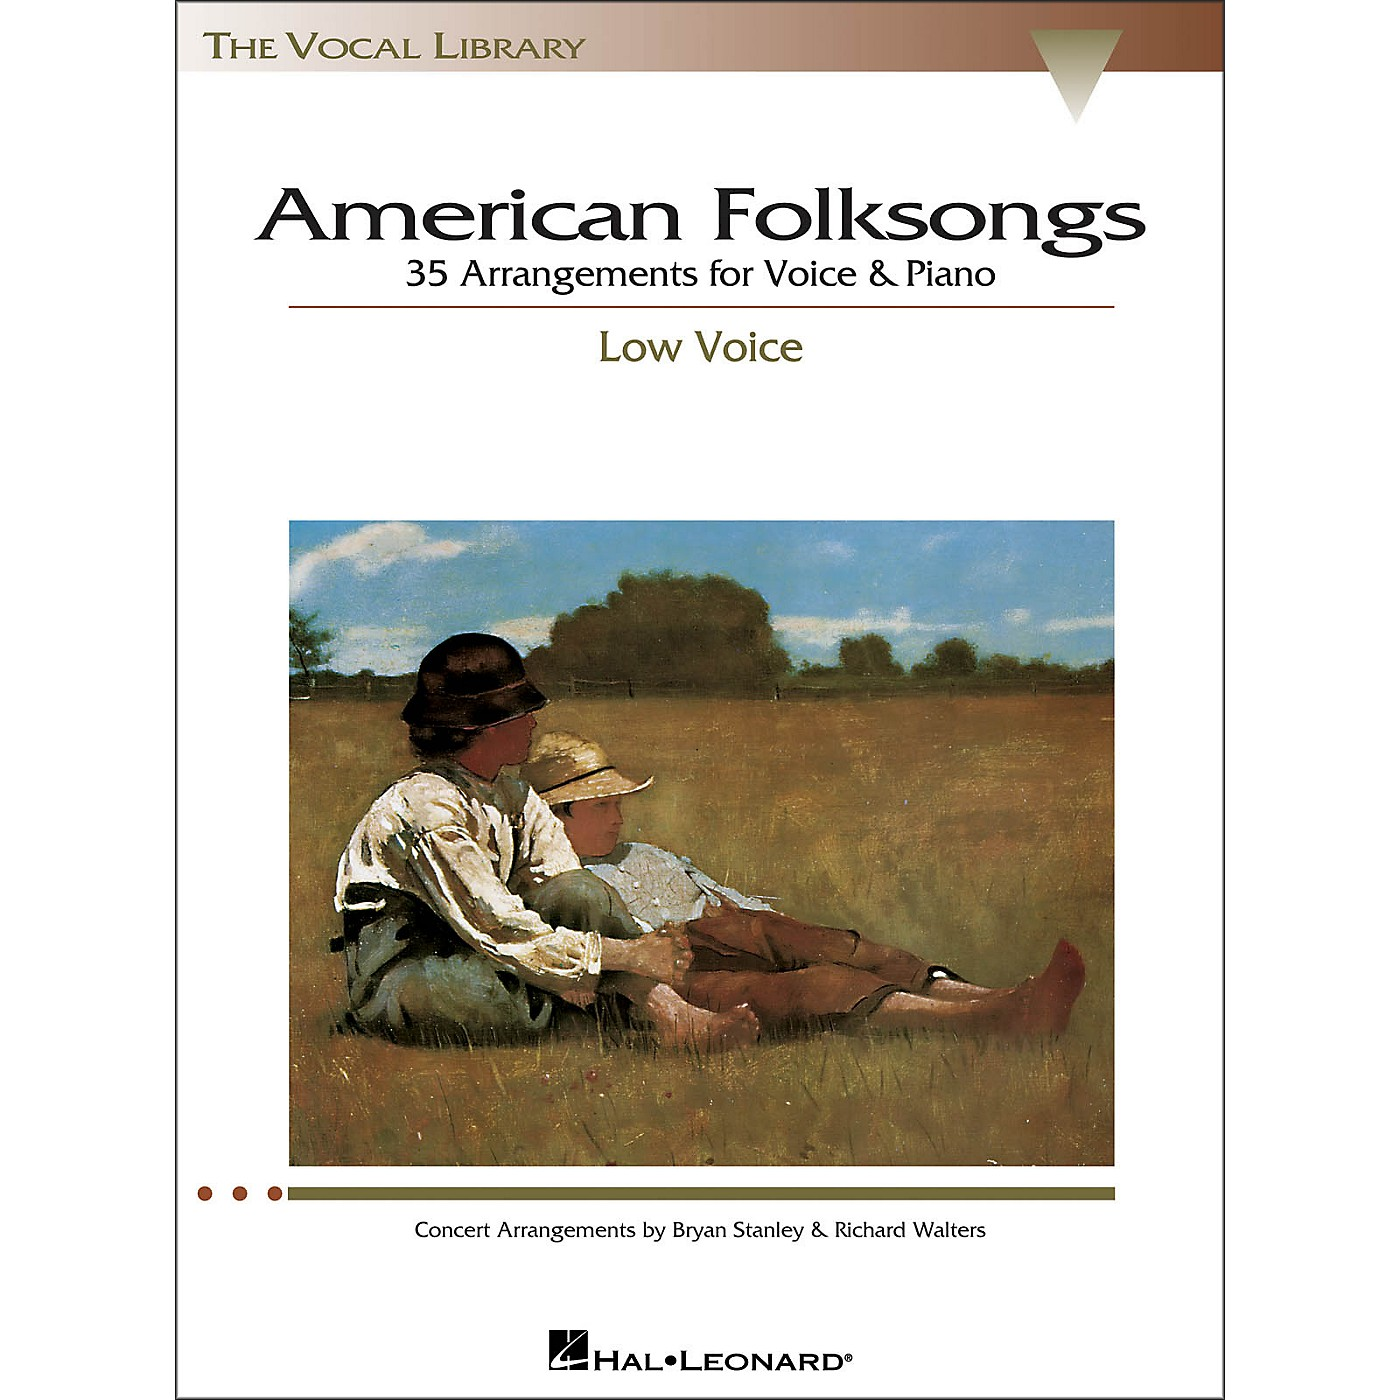 Hal Leonard American Folksongs for Low Voice (The Vocal Library Series) thumbnail